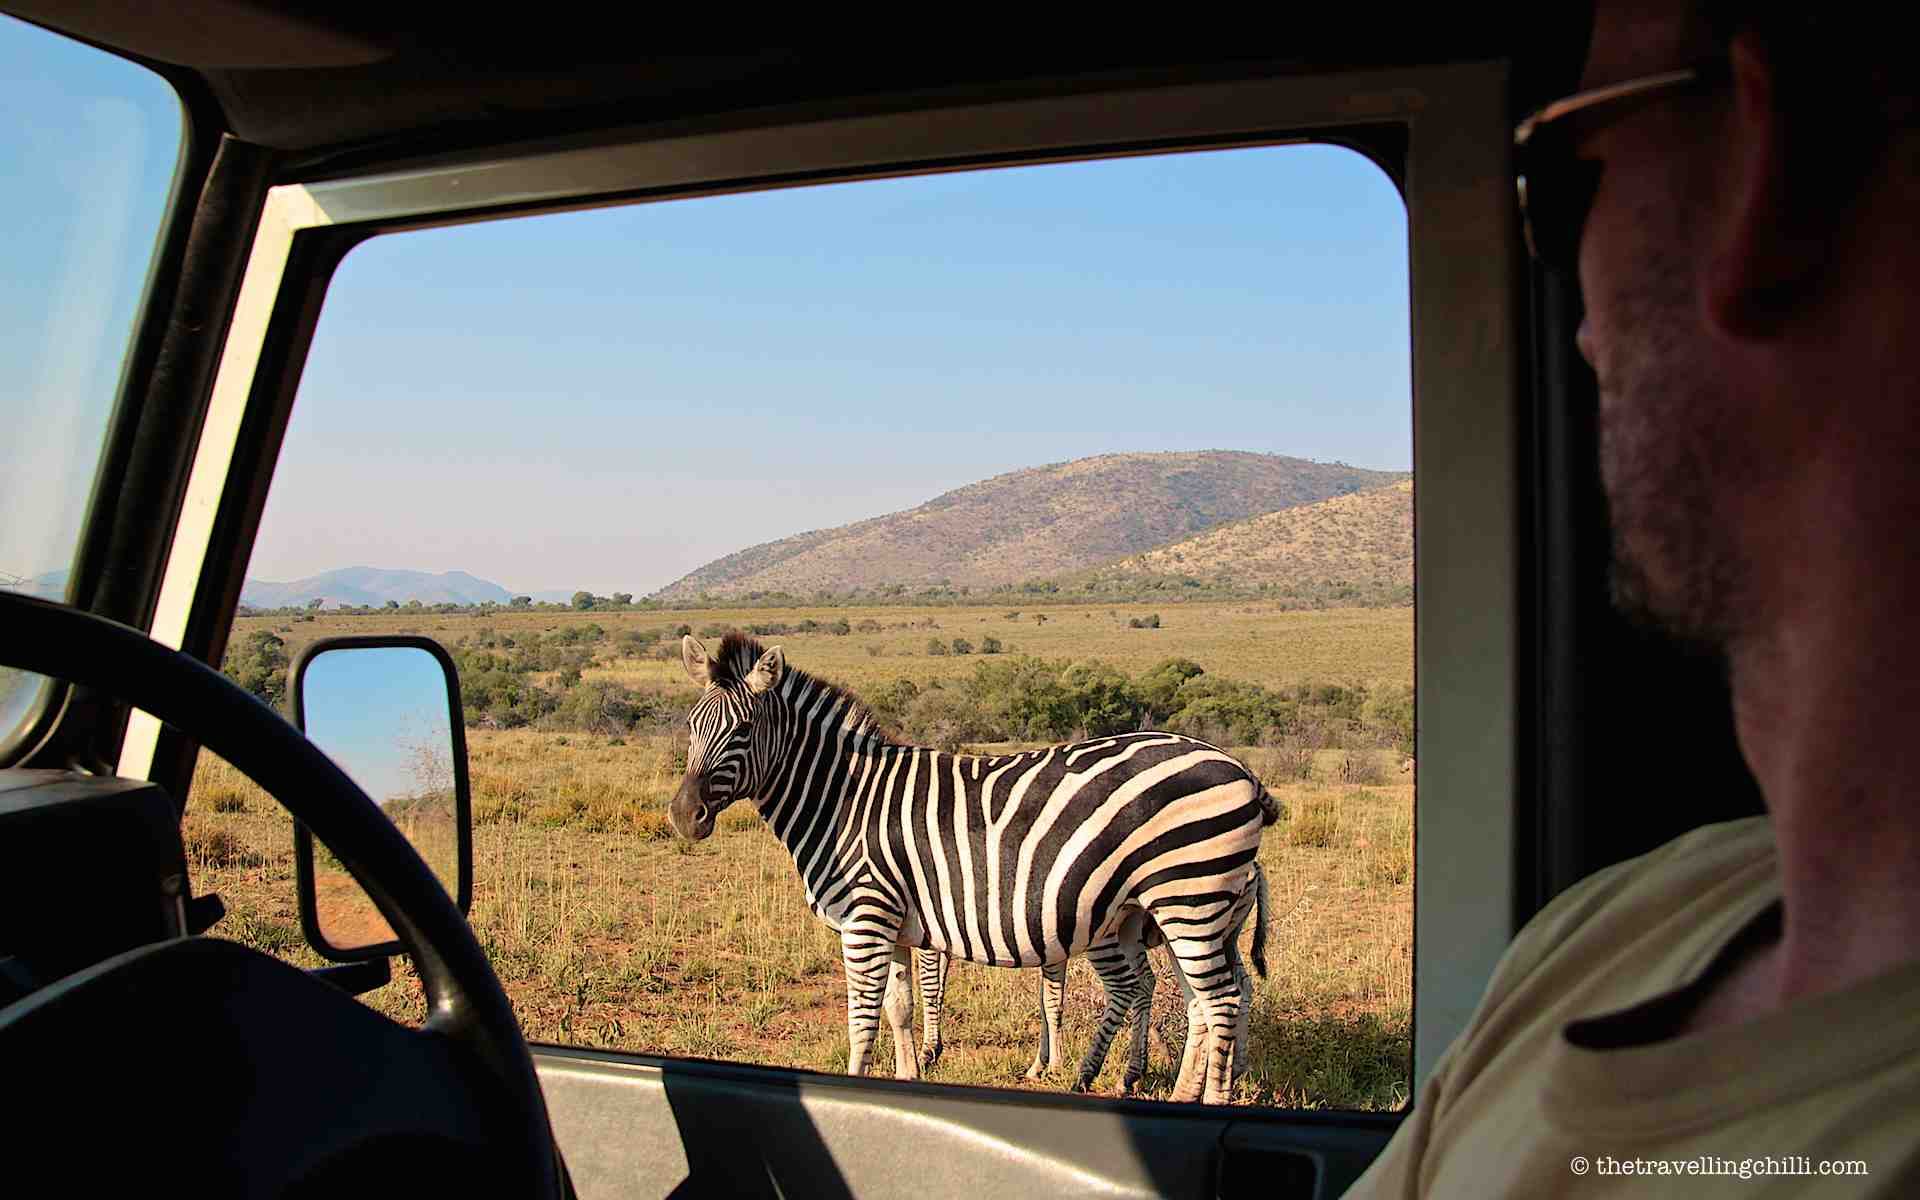 Zebra Pilanesberg National Park in South Africa